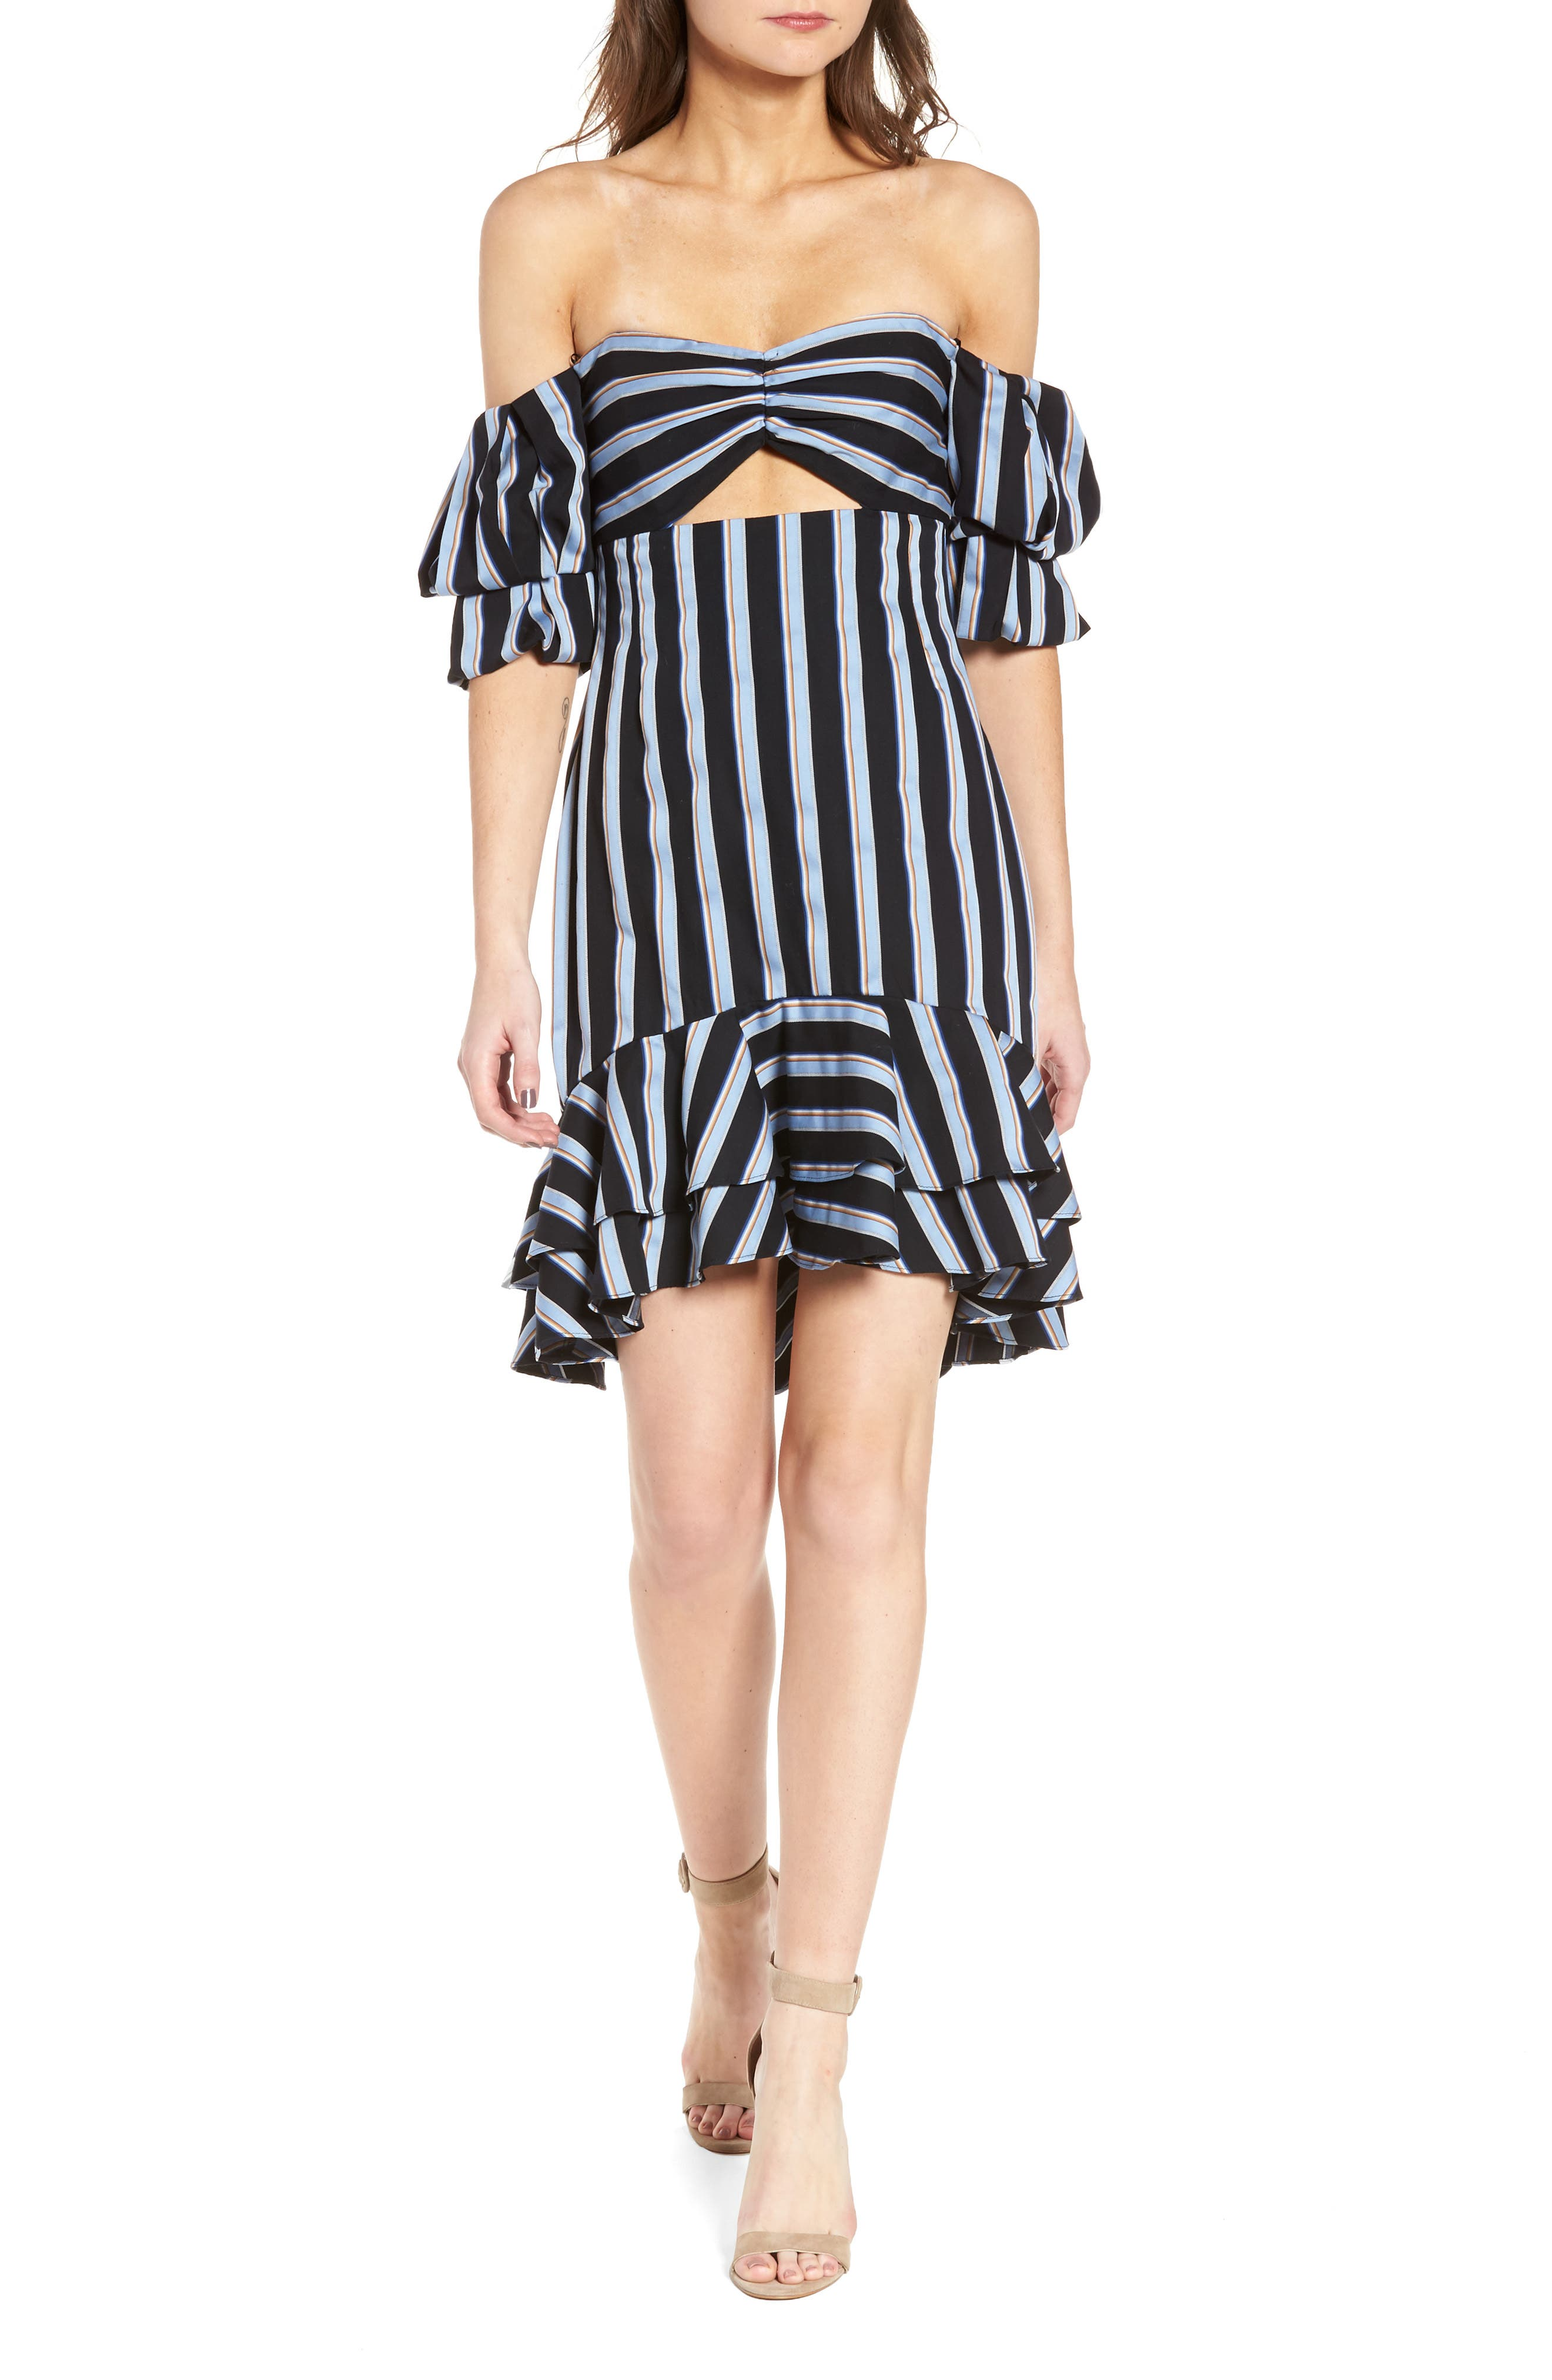 Alternate Image 1 Selected - WAYF Tegan Off the Shoulder Dress